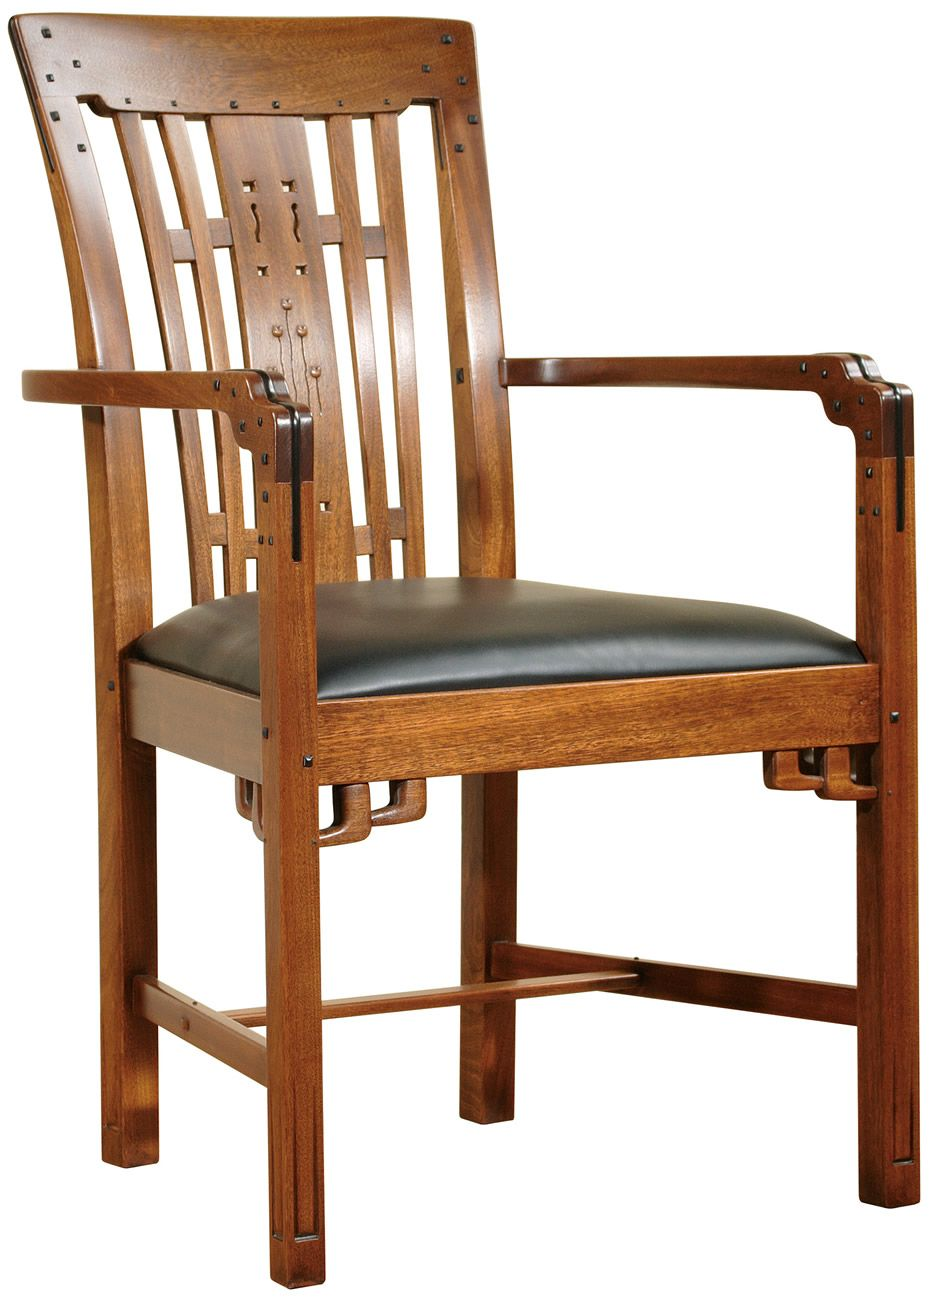 stickley furniture term paper Eleanor roosevelt's foray into decor and furniture production, val-kill industries, sprang from the roots of a friendship formed between herself and companions nancy cook and marion dickerman.